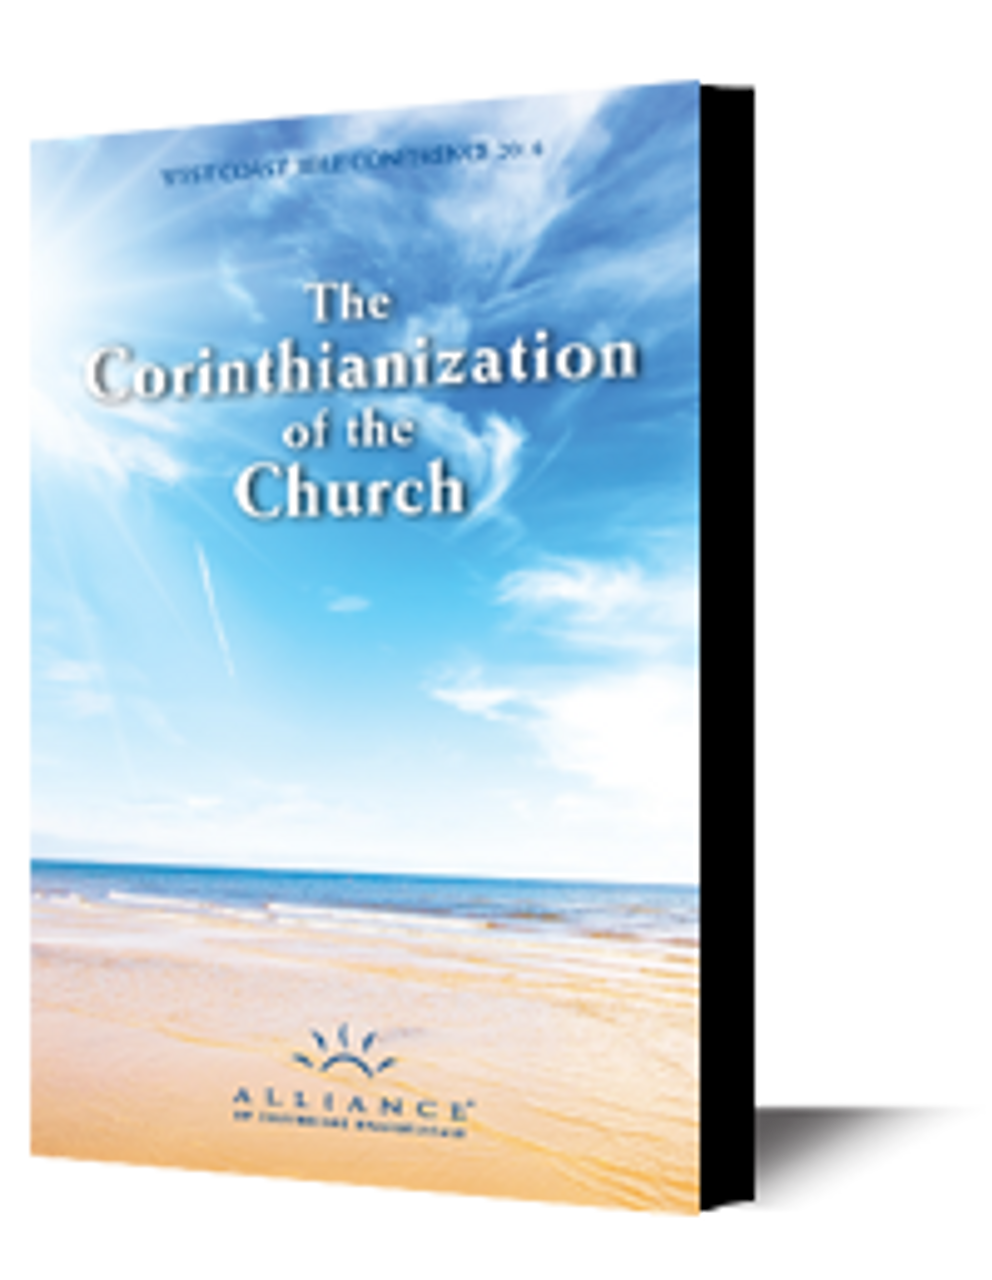 The Corinthianization of the Church (CD Set)